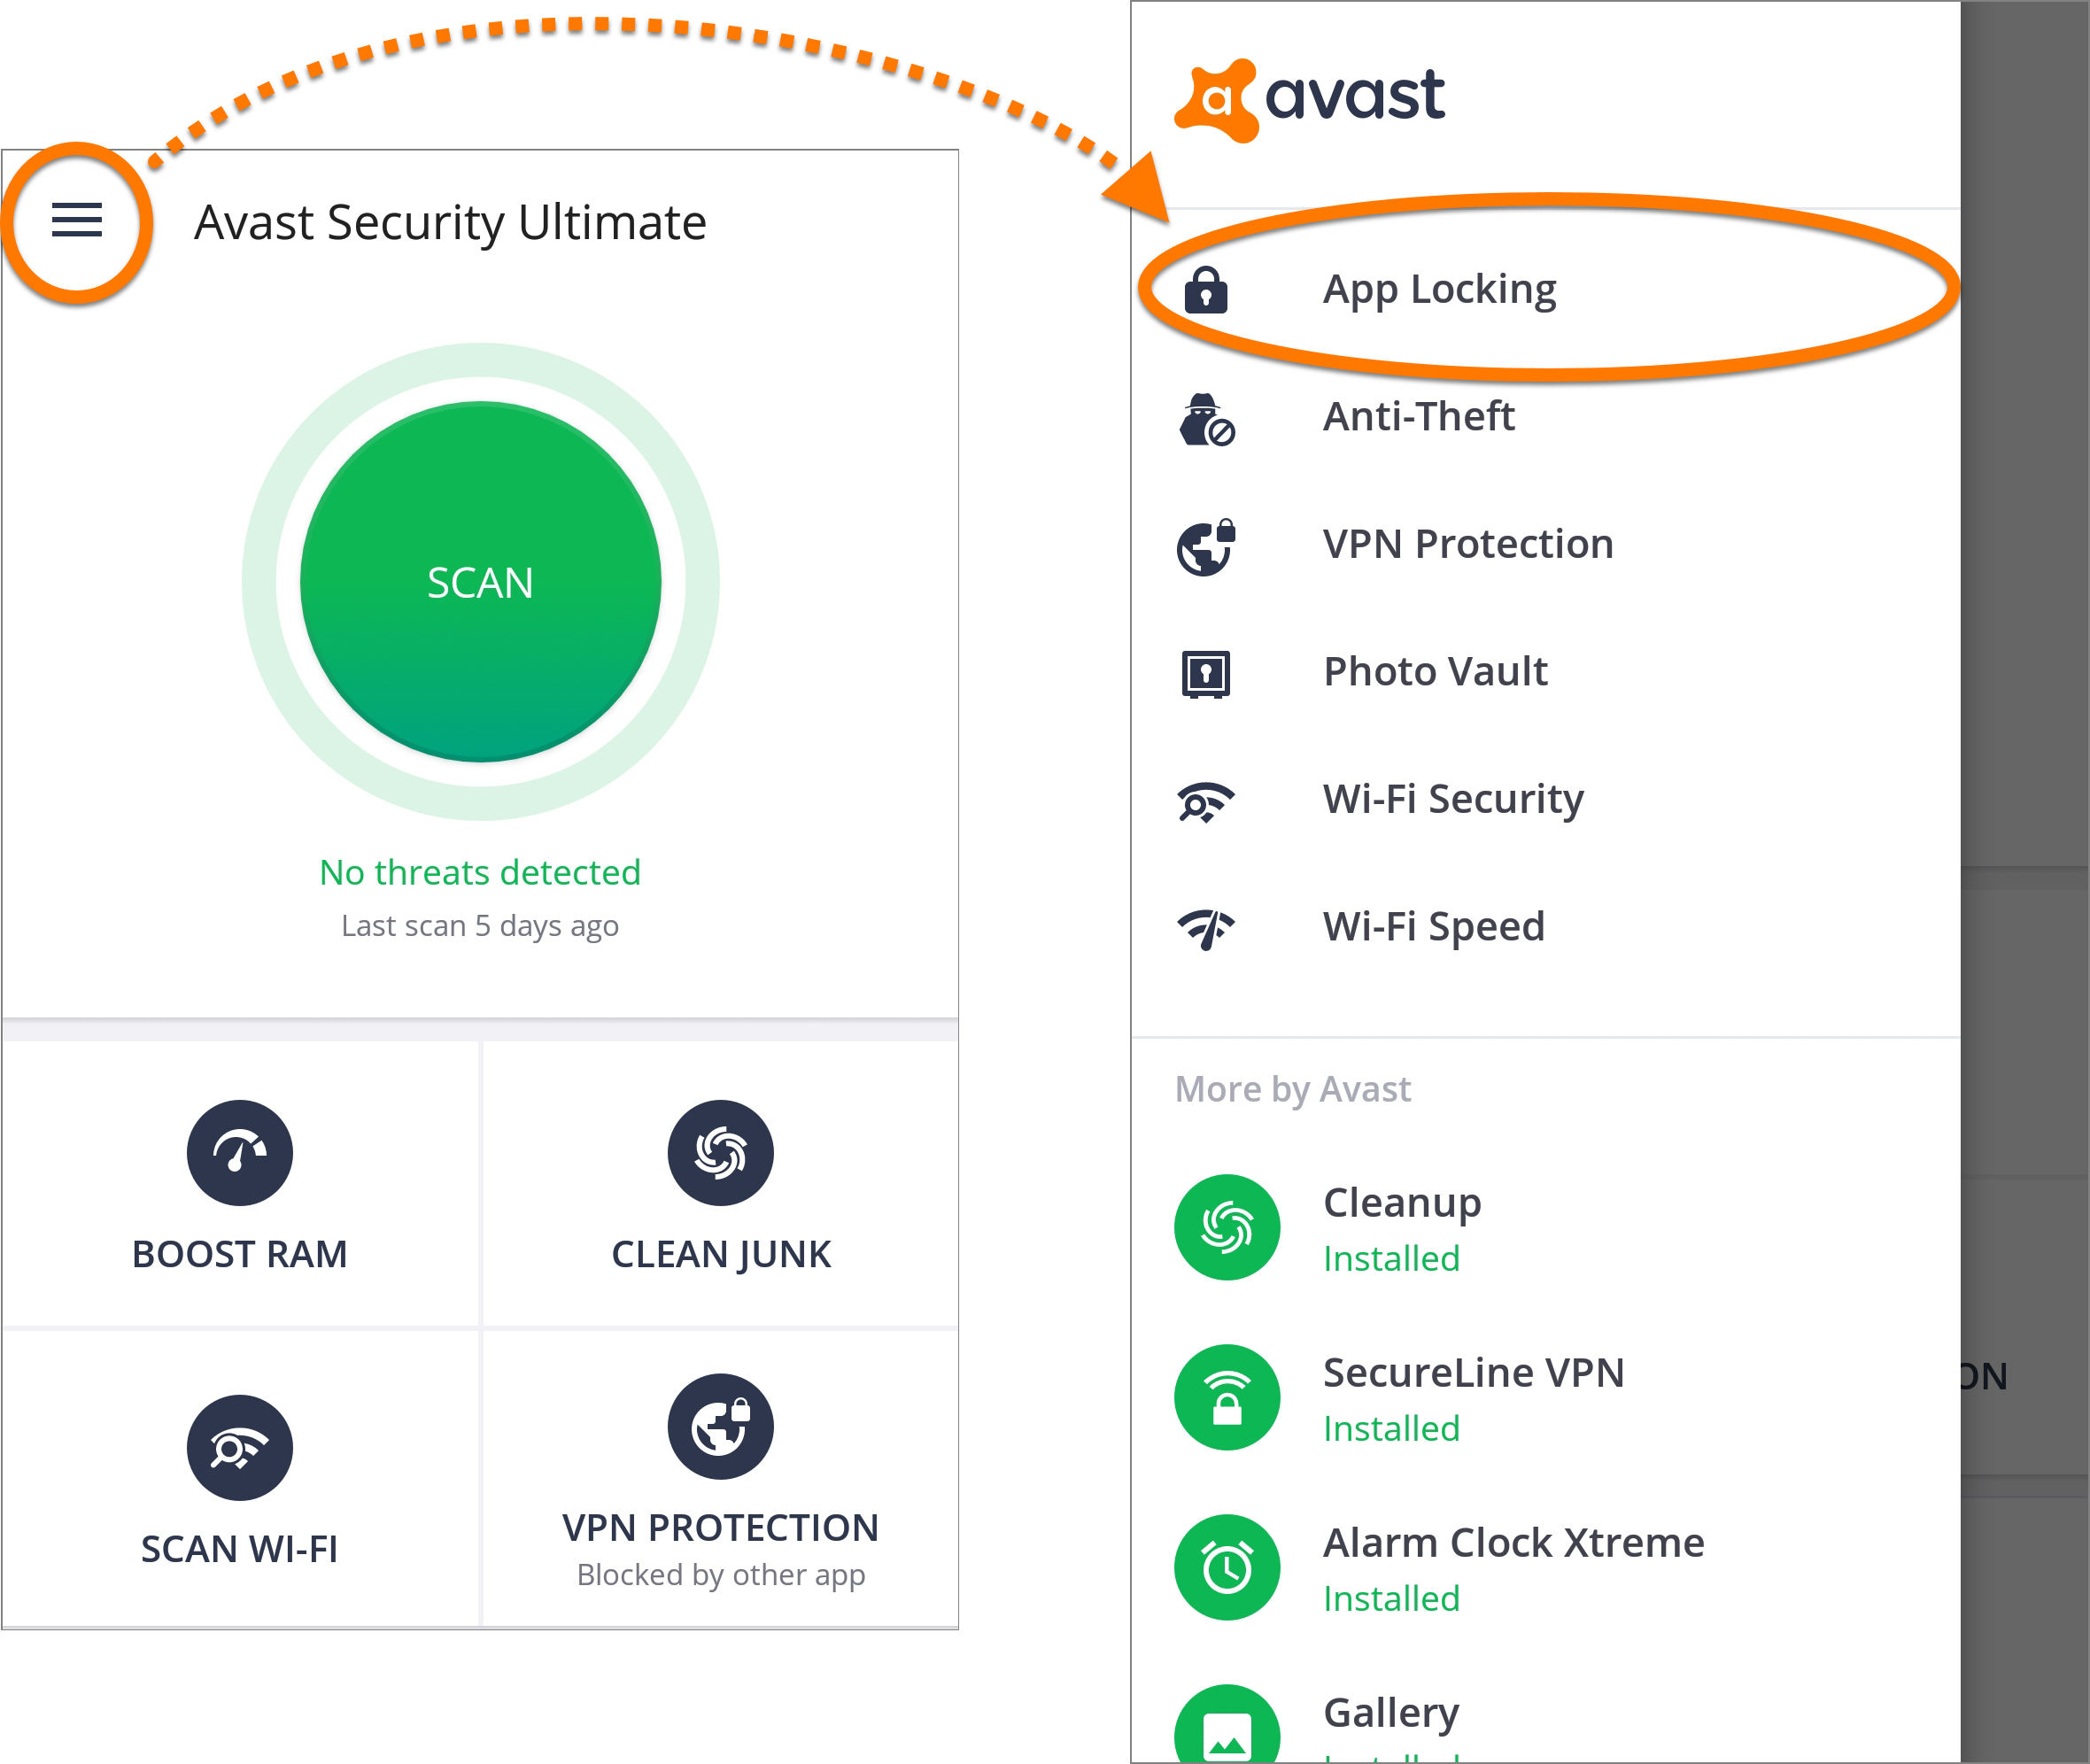 Avast Mobile Security for Android - Getting Started